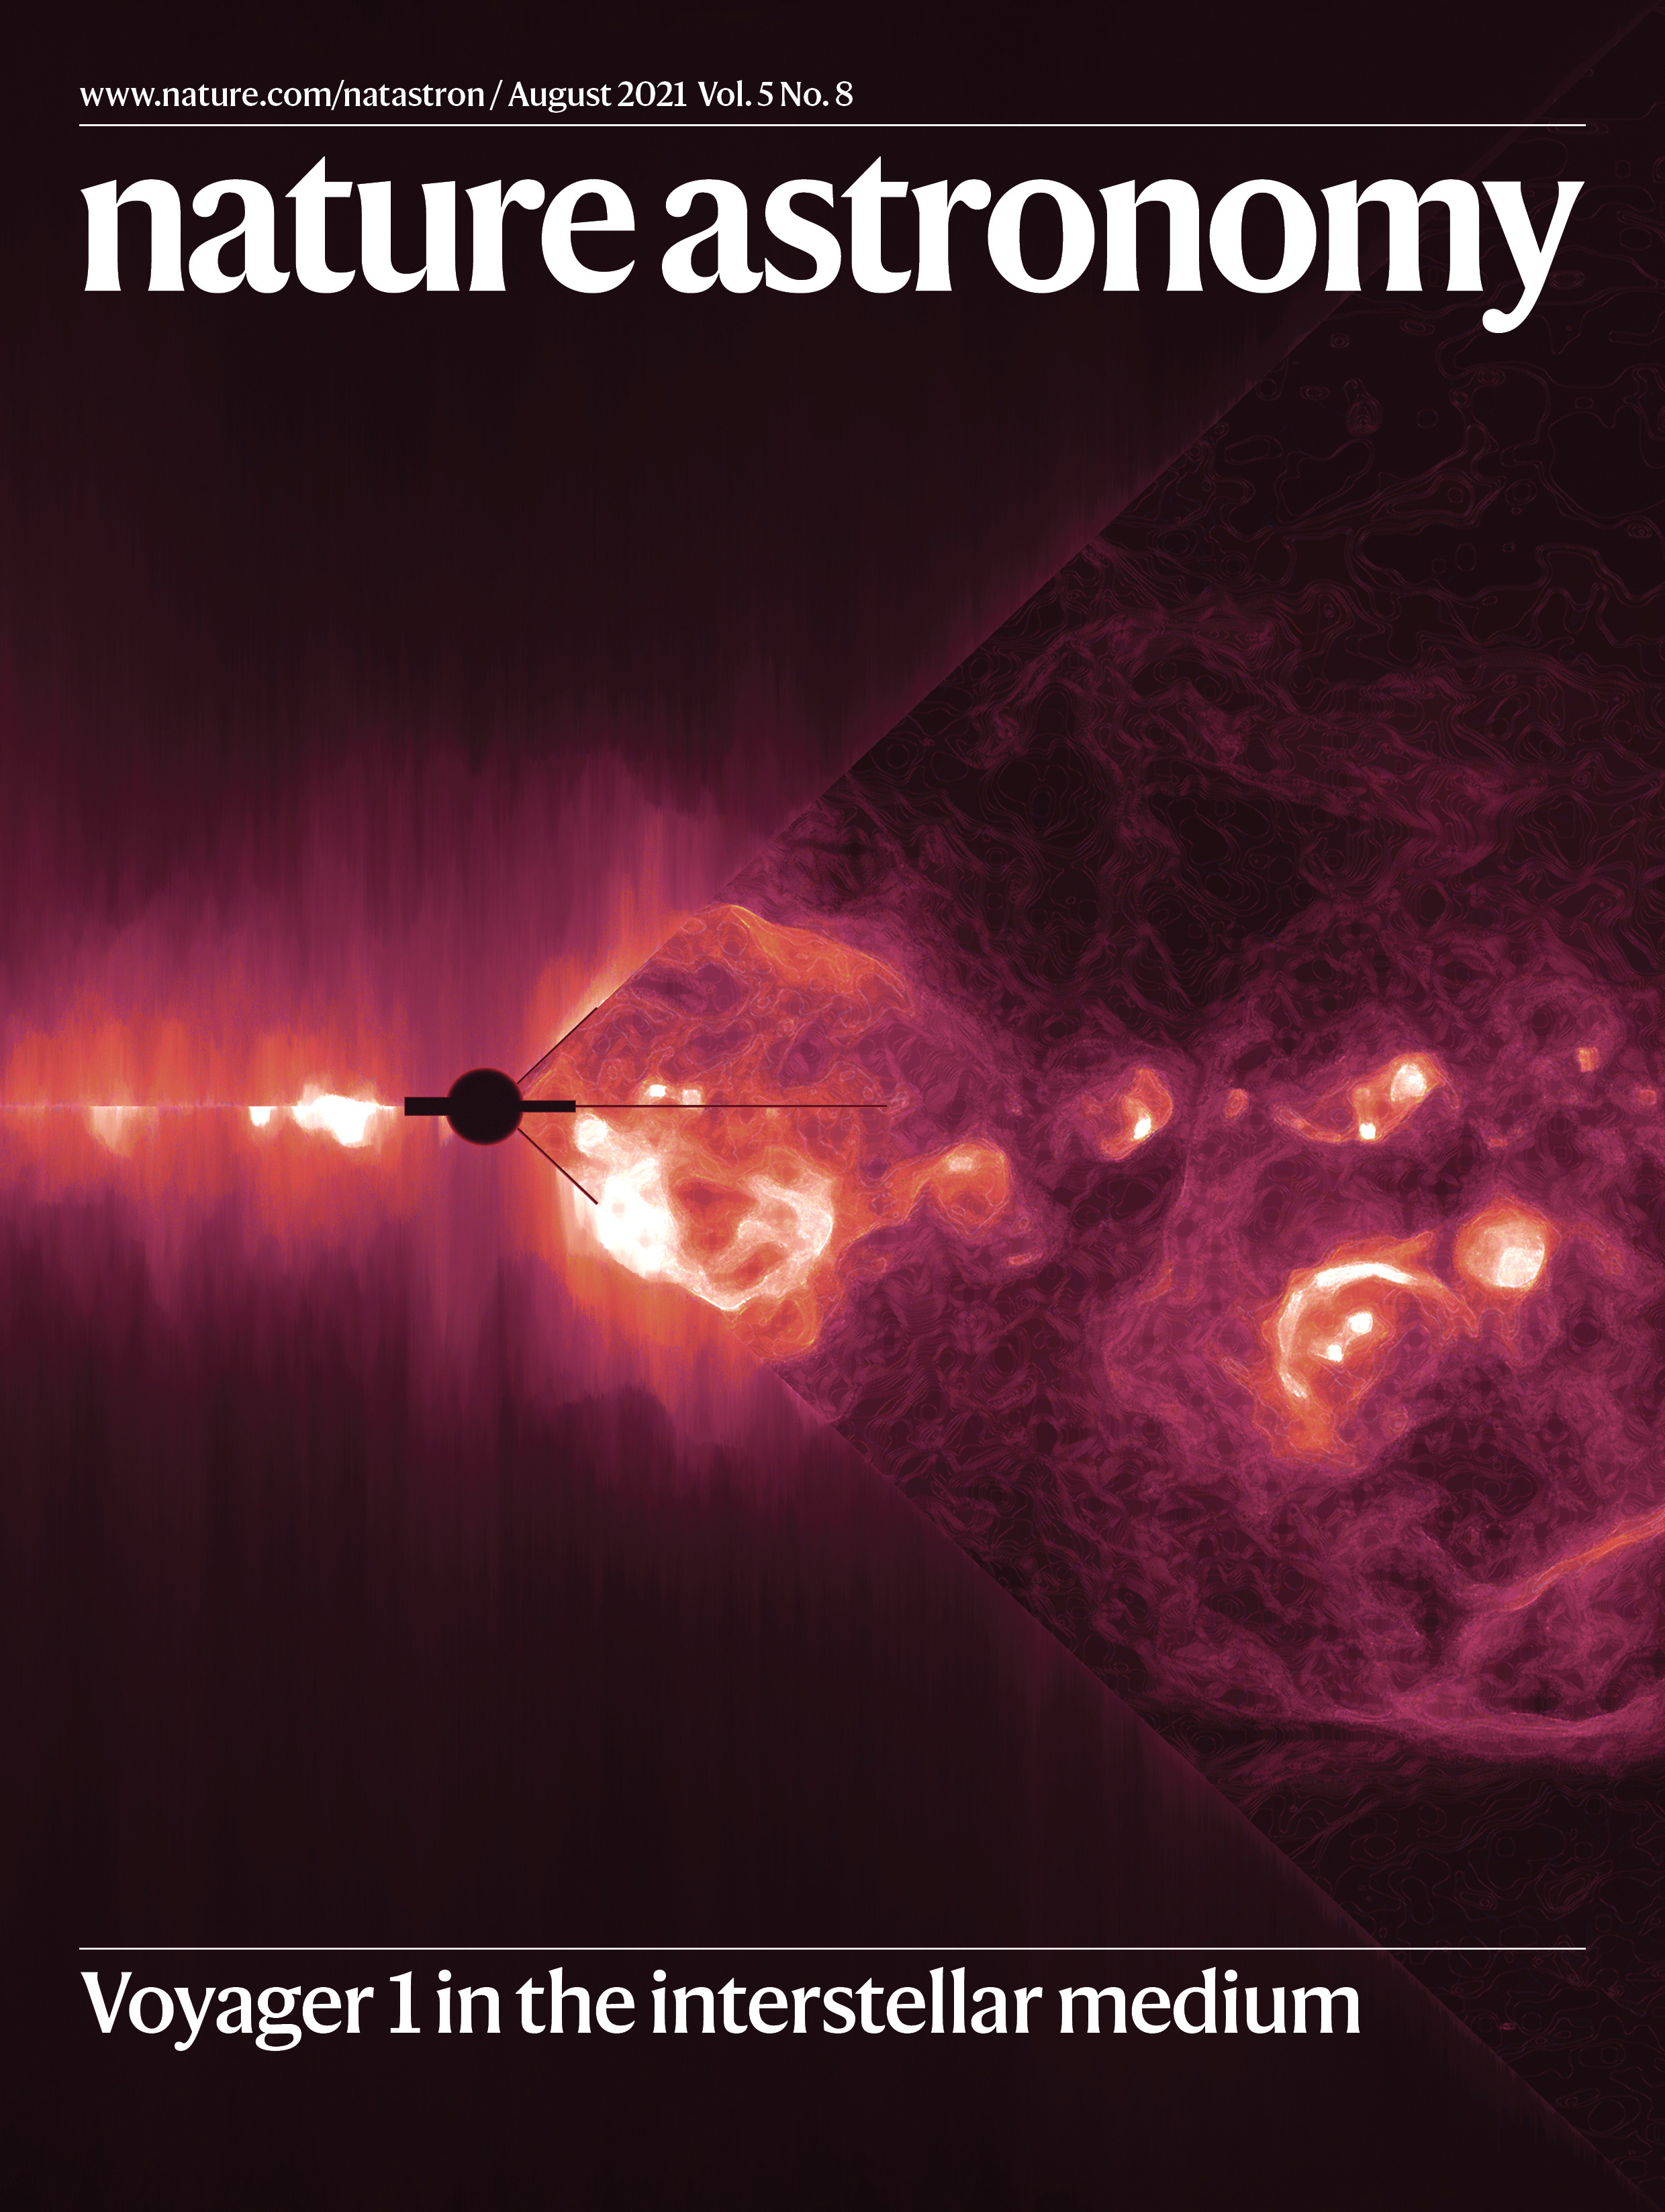 Cover of the August 2021 issue of Nature Astronomy